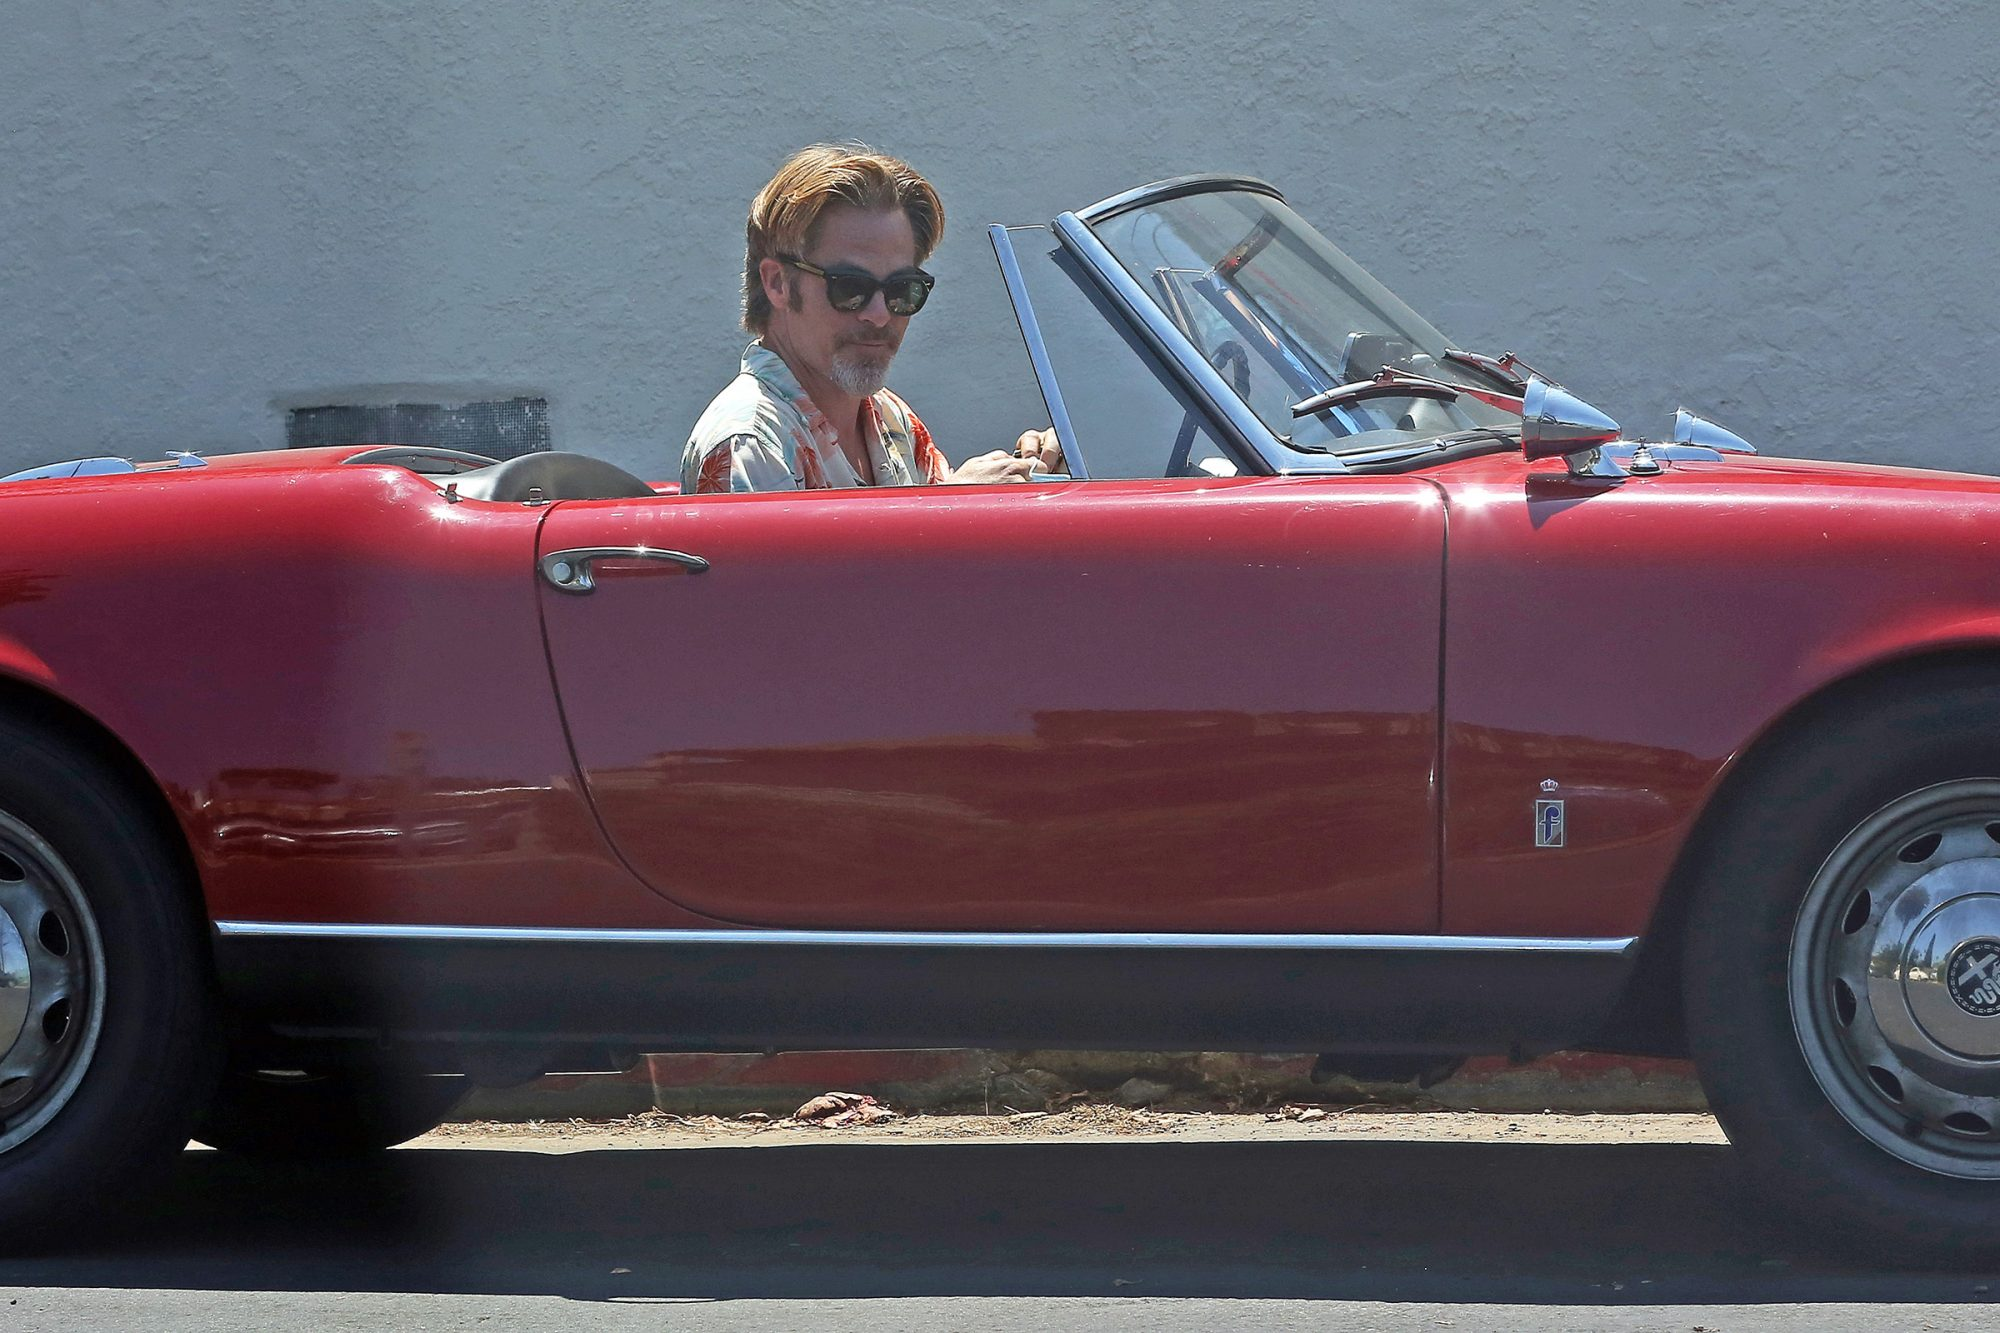 Chris Pine out for a drive in his classic red convertible